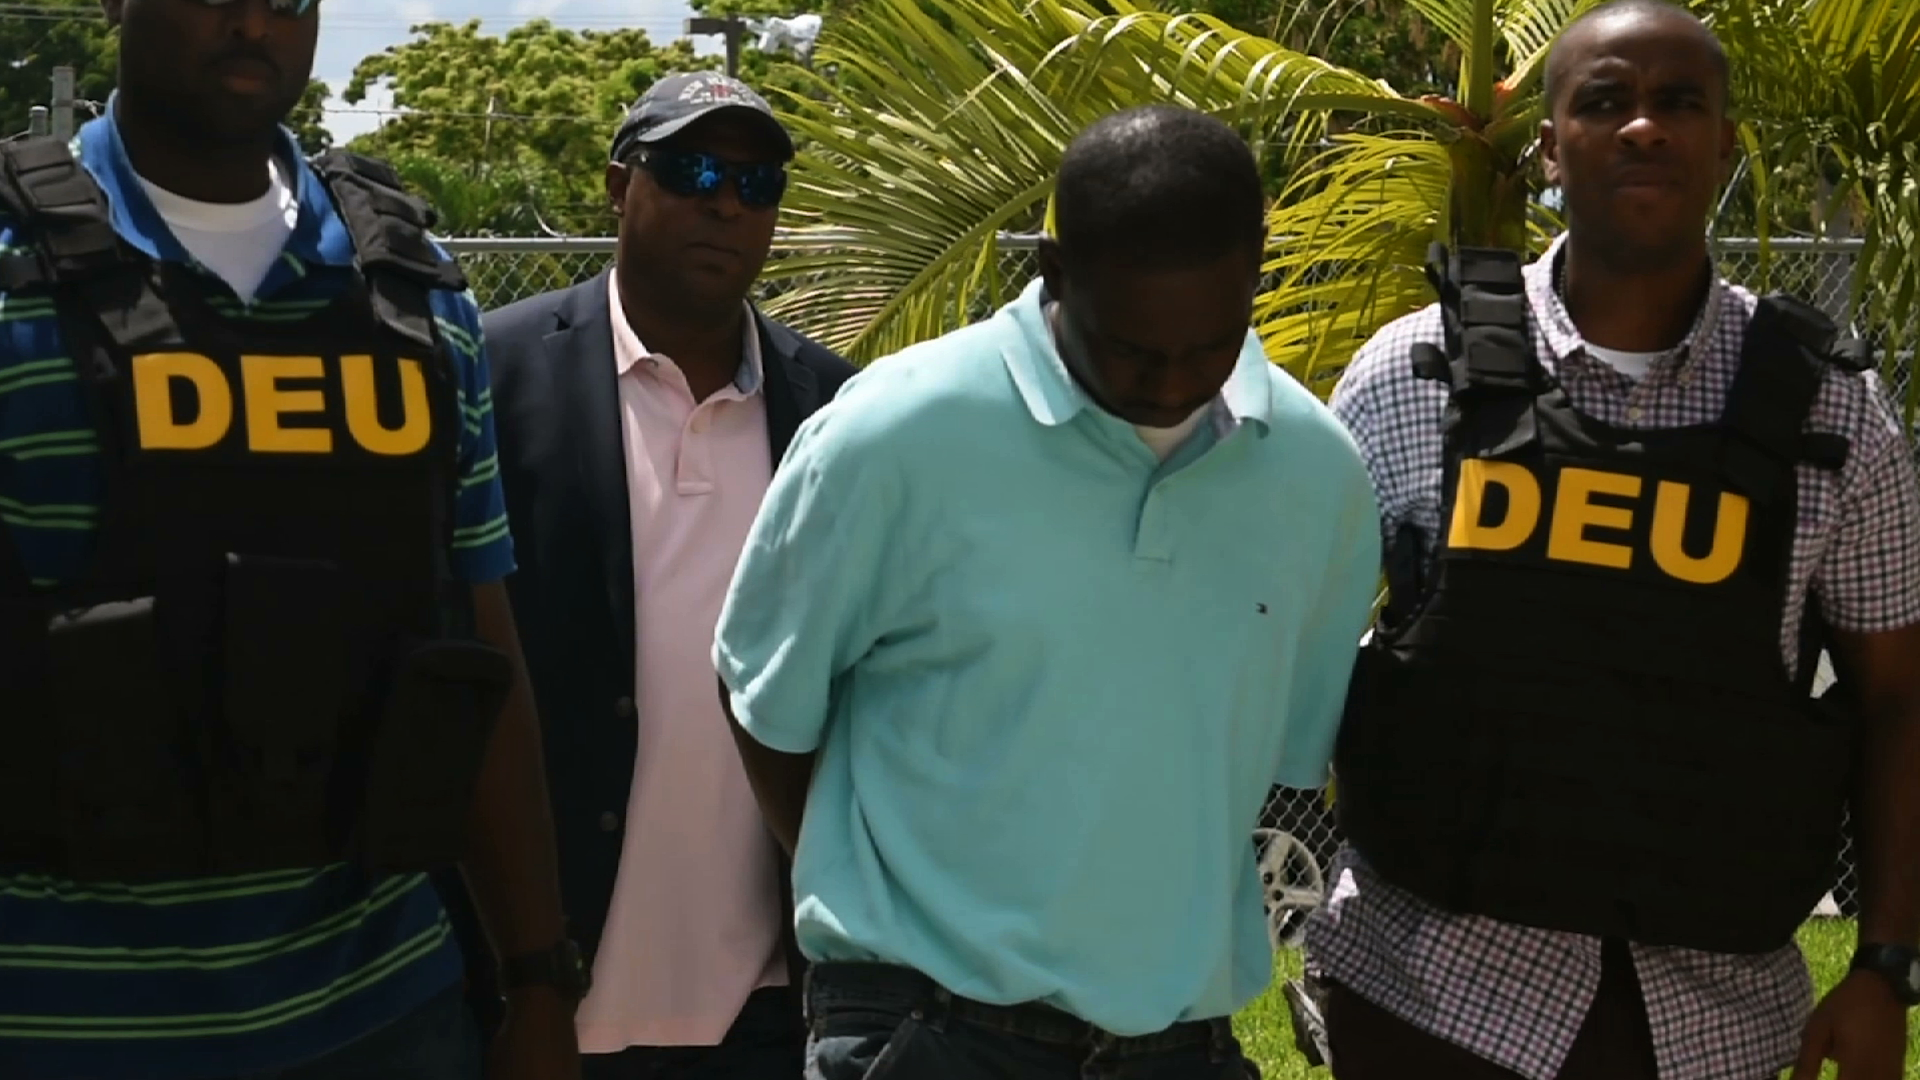 Police officer arraigned for cocaine possession